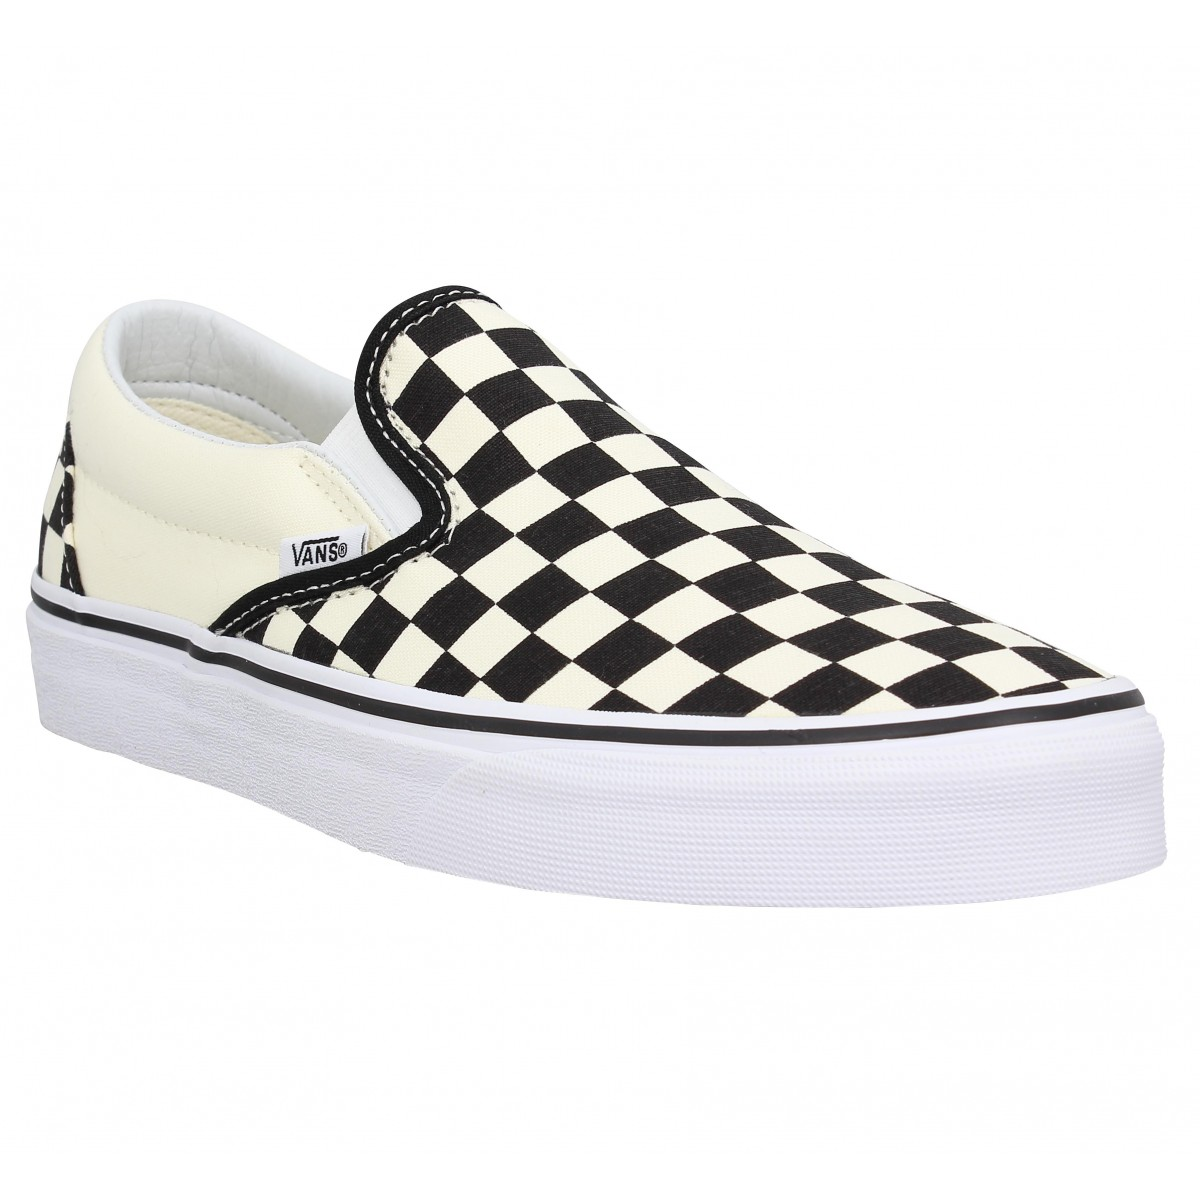 VANS Classic Slip On toile Damier